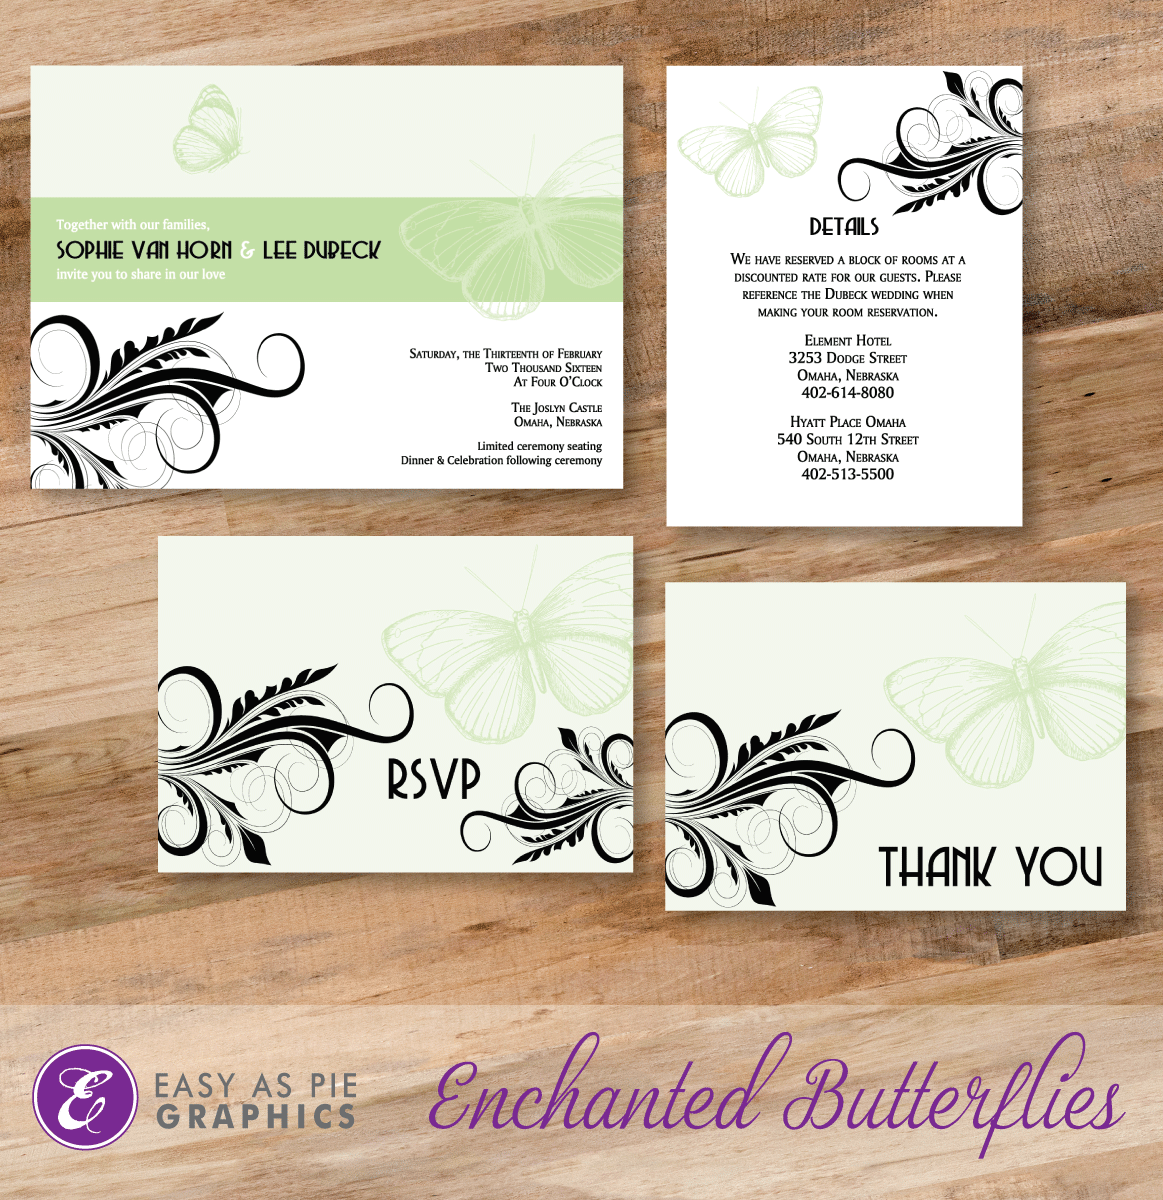 Enchanted Butterflies Wedding Suite